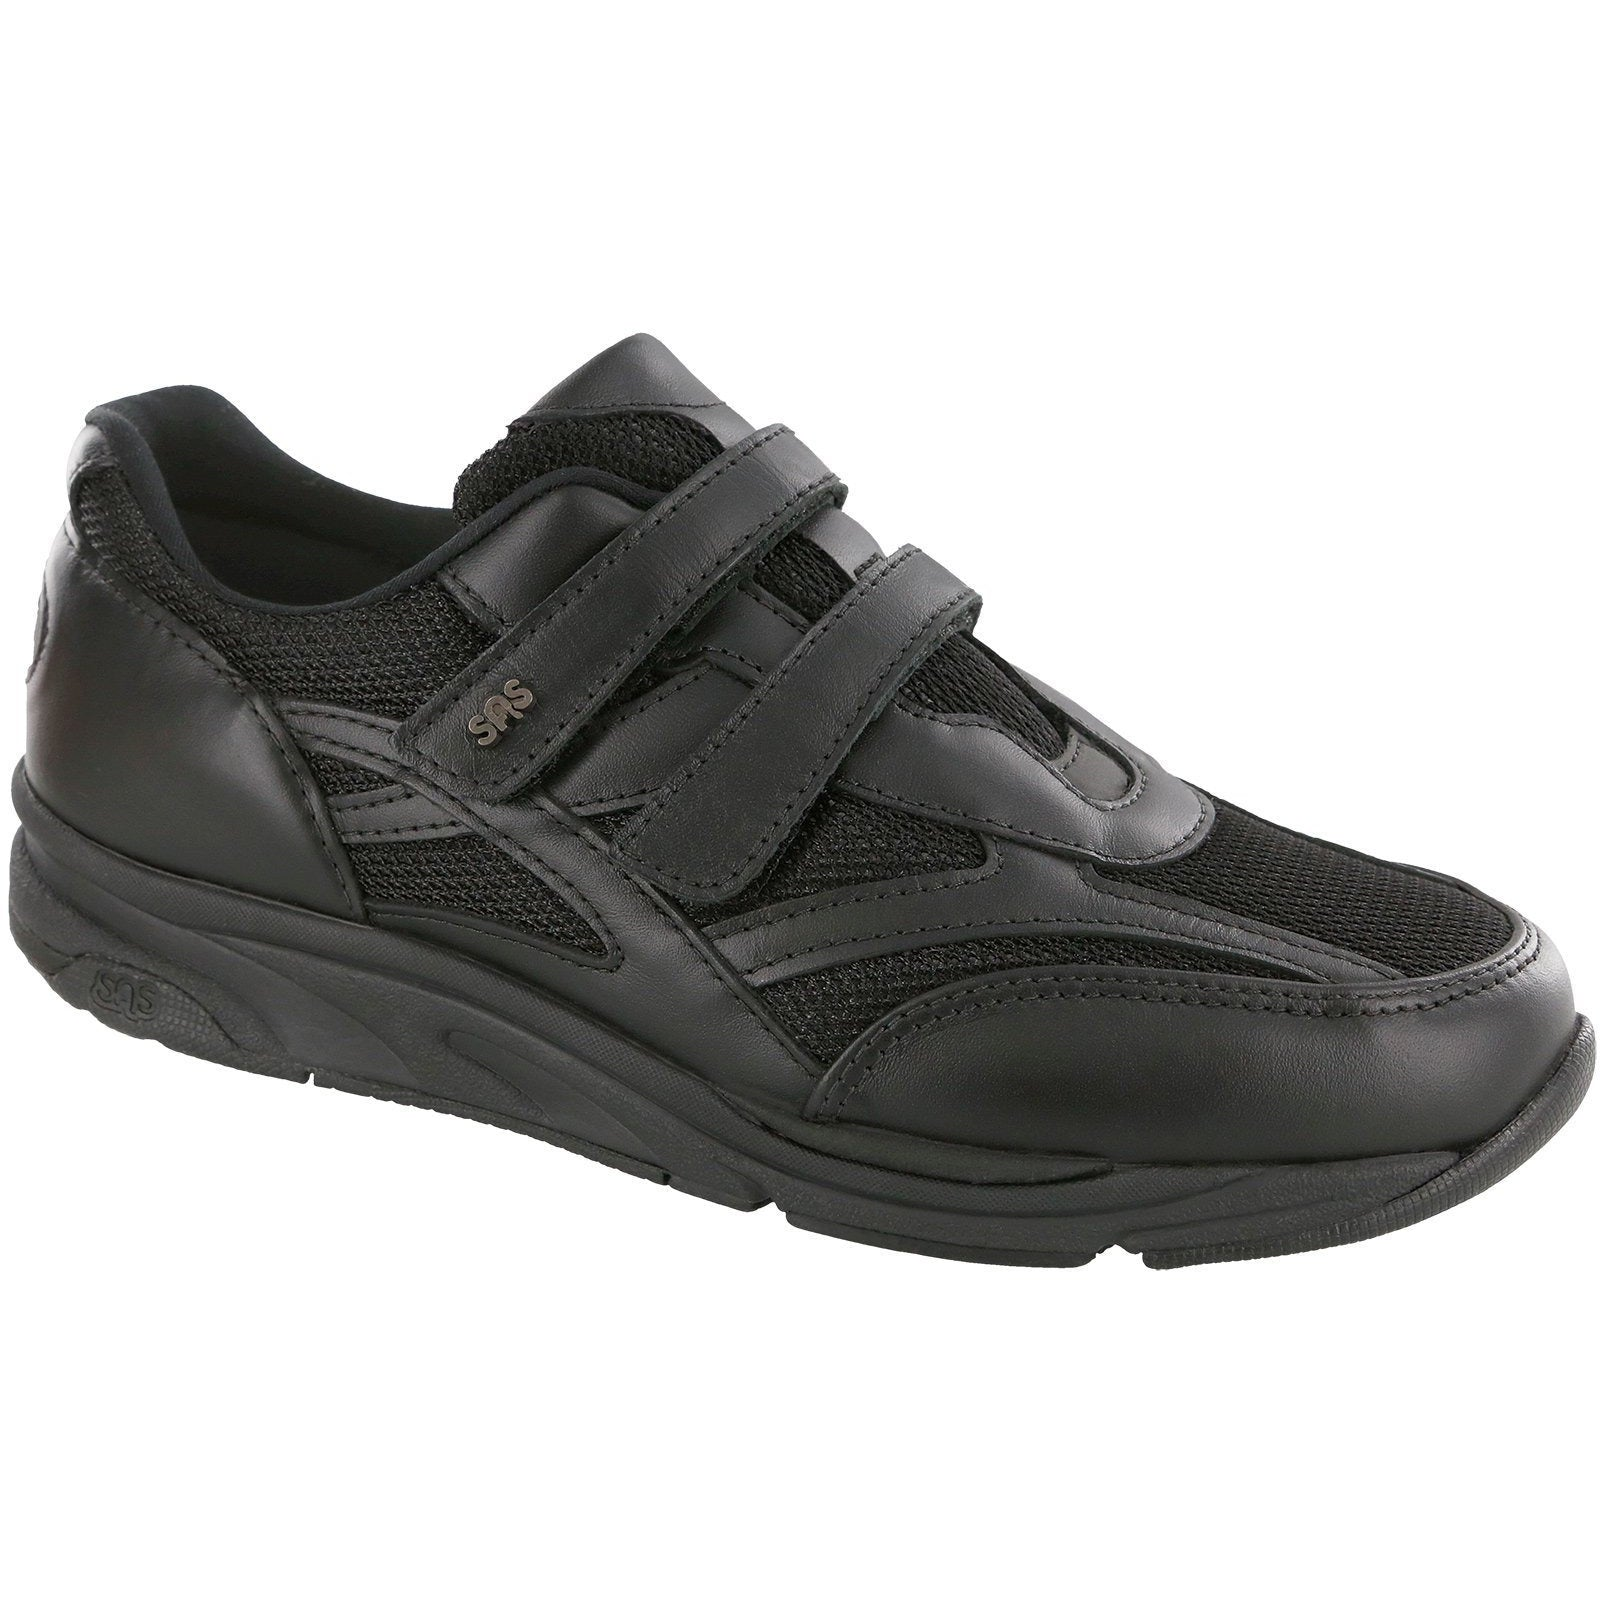 TMV Black by SAS Shoes: Comfort Women's Shoes